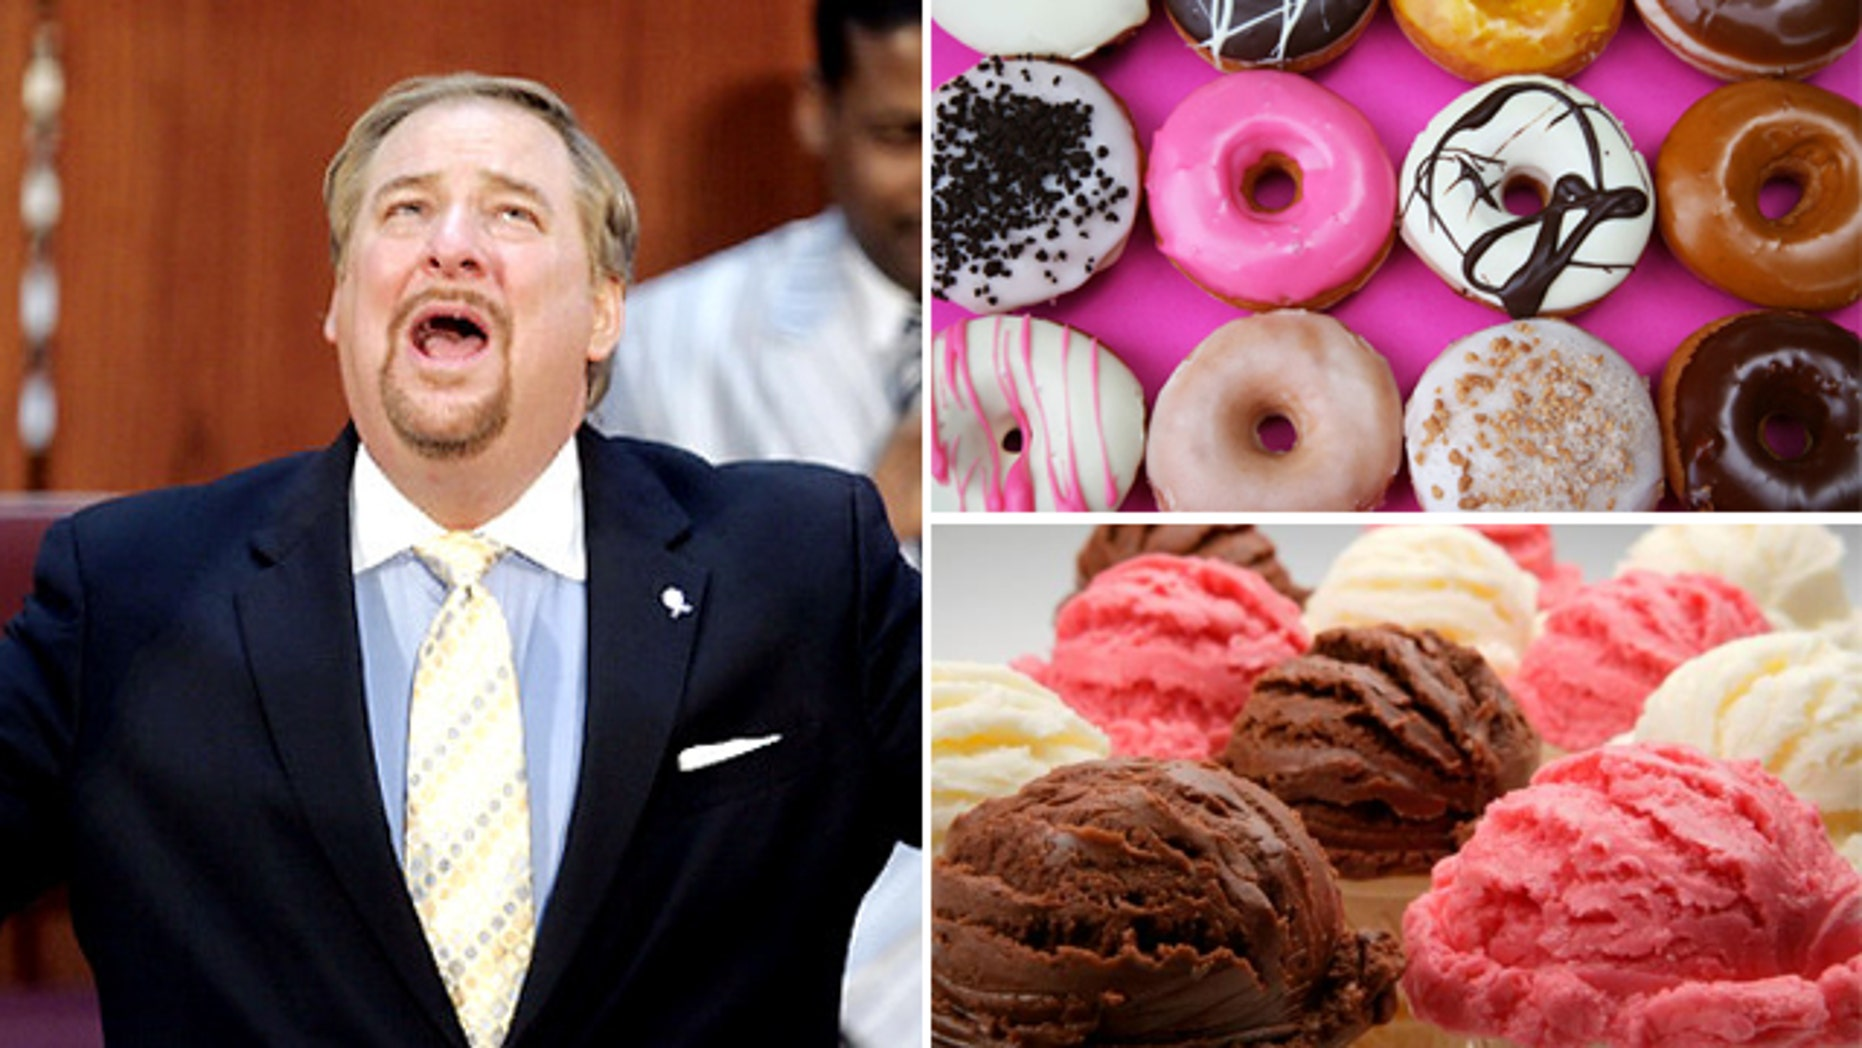 Rick Warren, pastor of Saddleback Church, is preaching to keep unhealthy things like donuts and ice cream out of parishioners' diets.